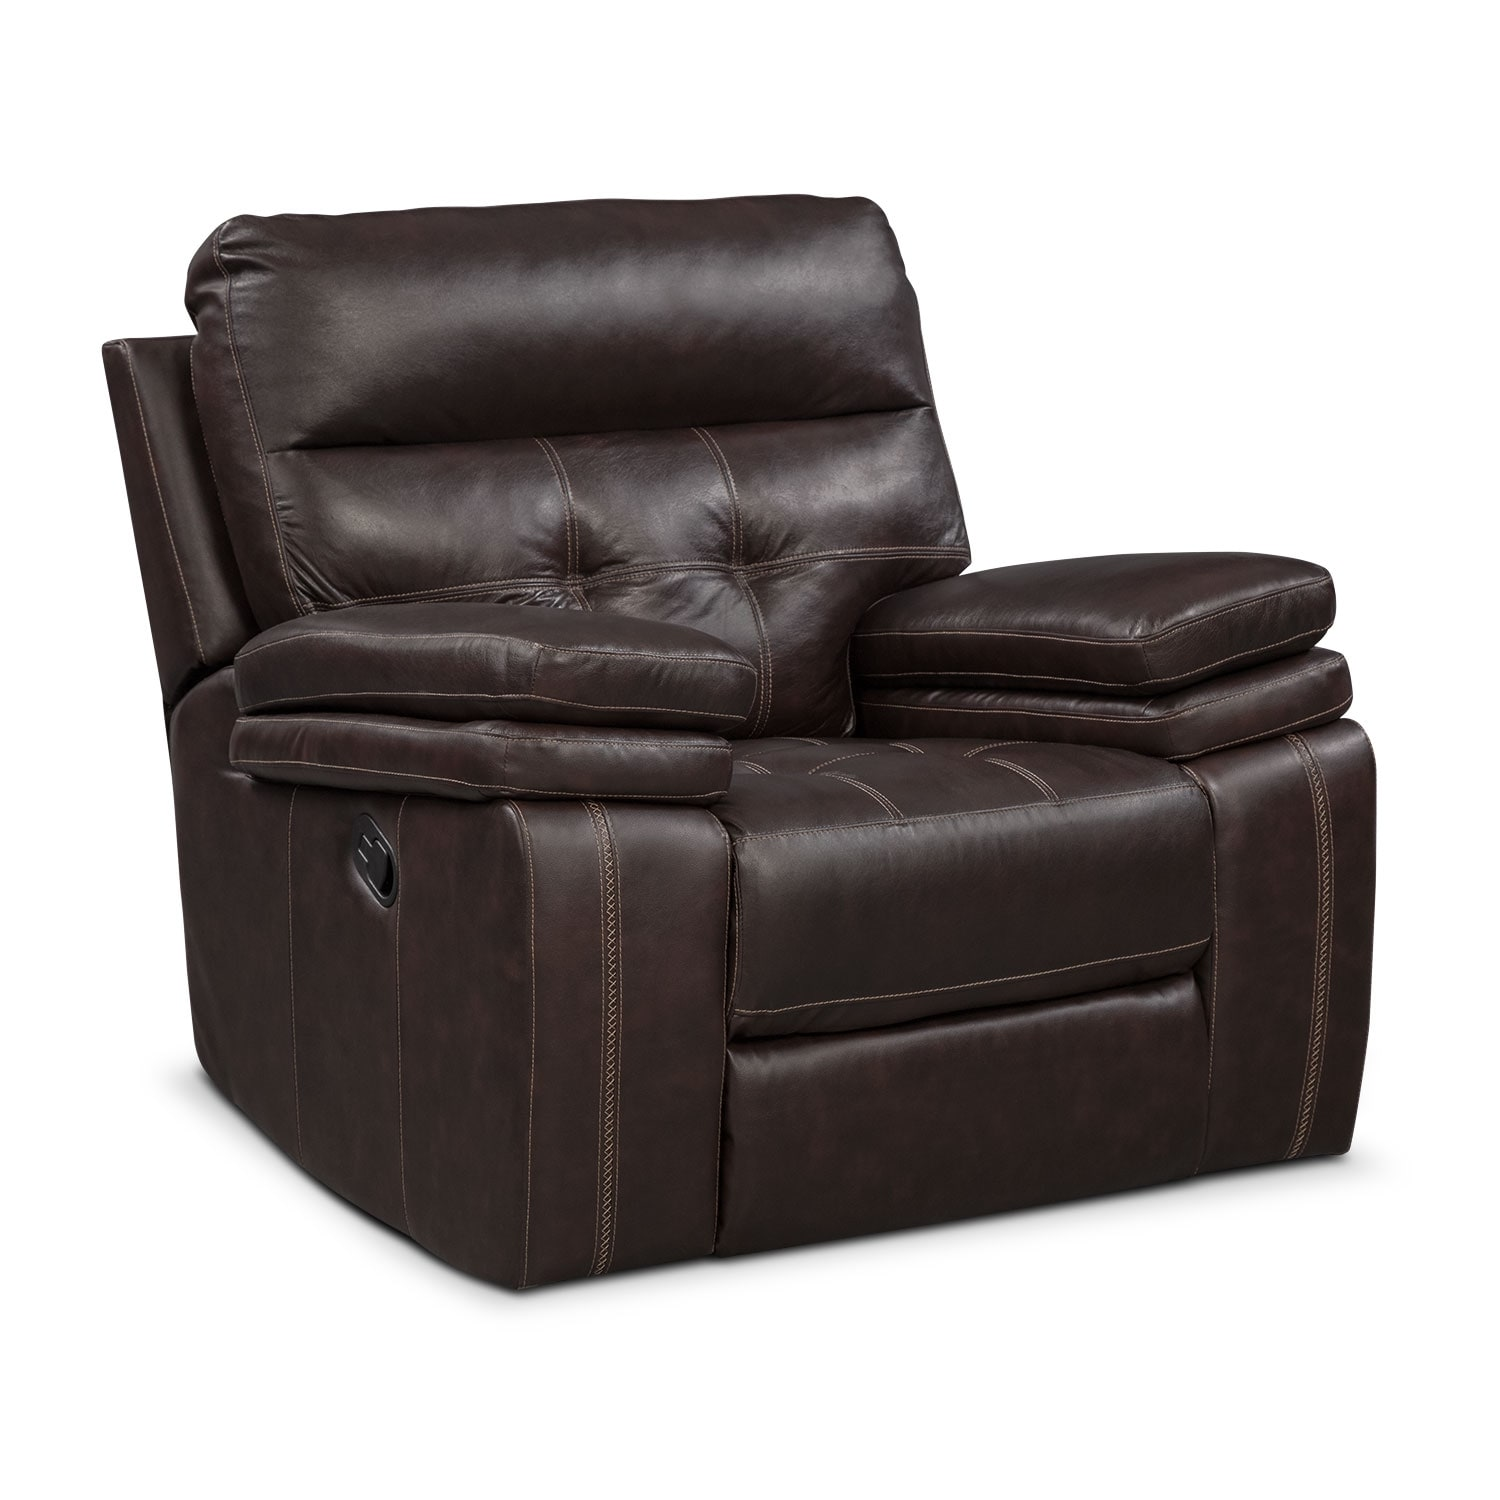 Brisco manual recliner brown american signature furniture for Signature furniture